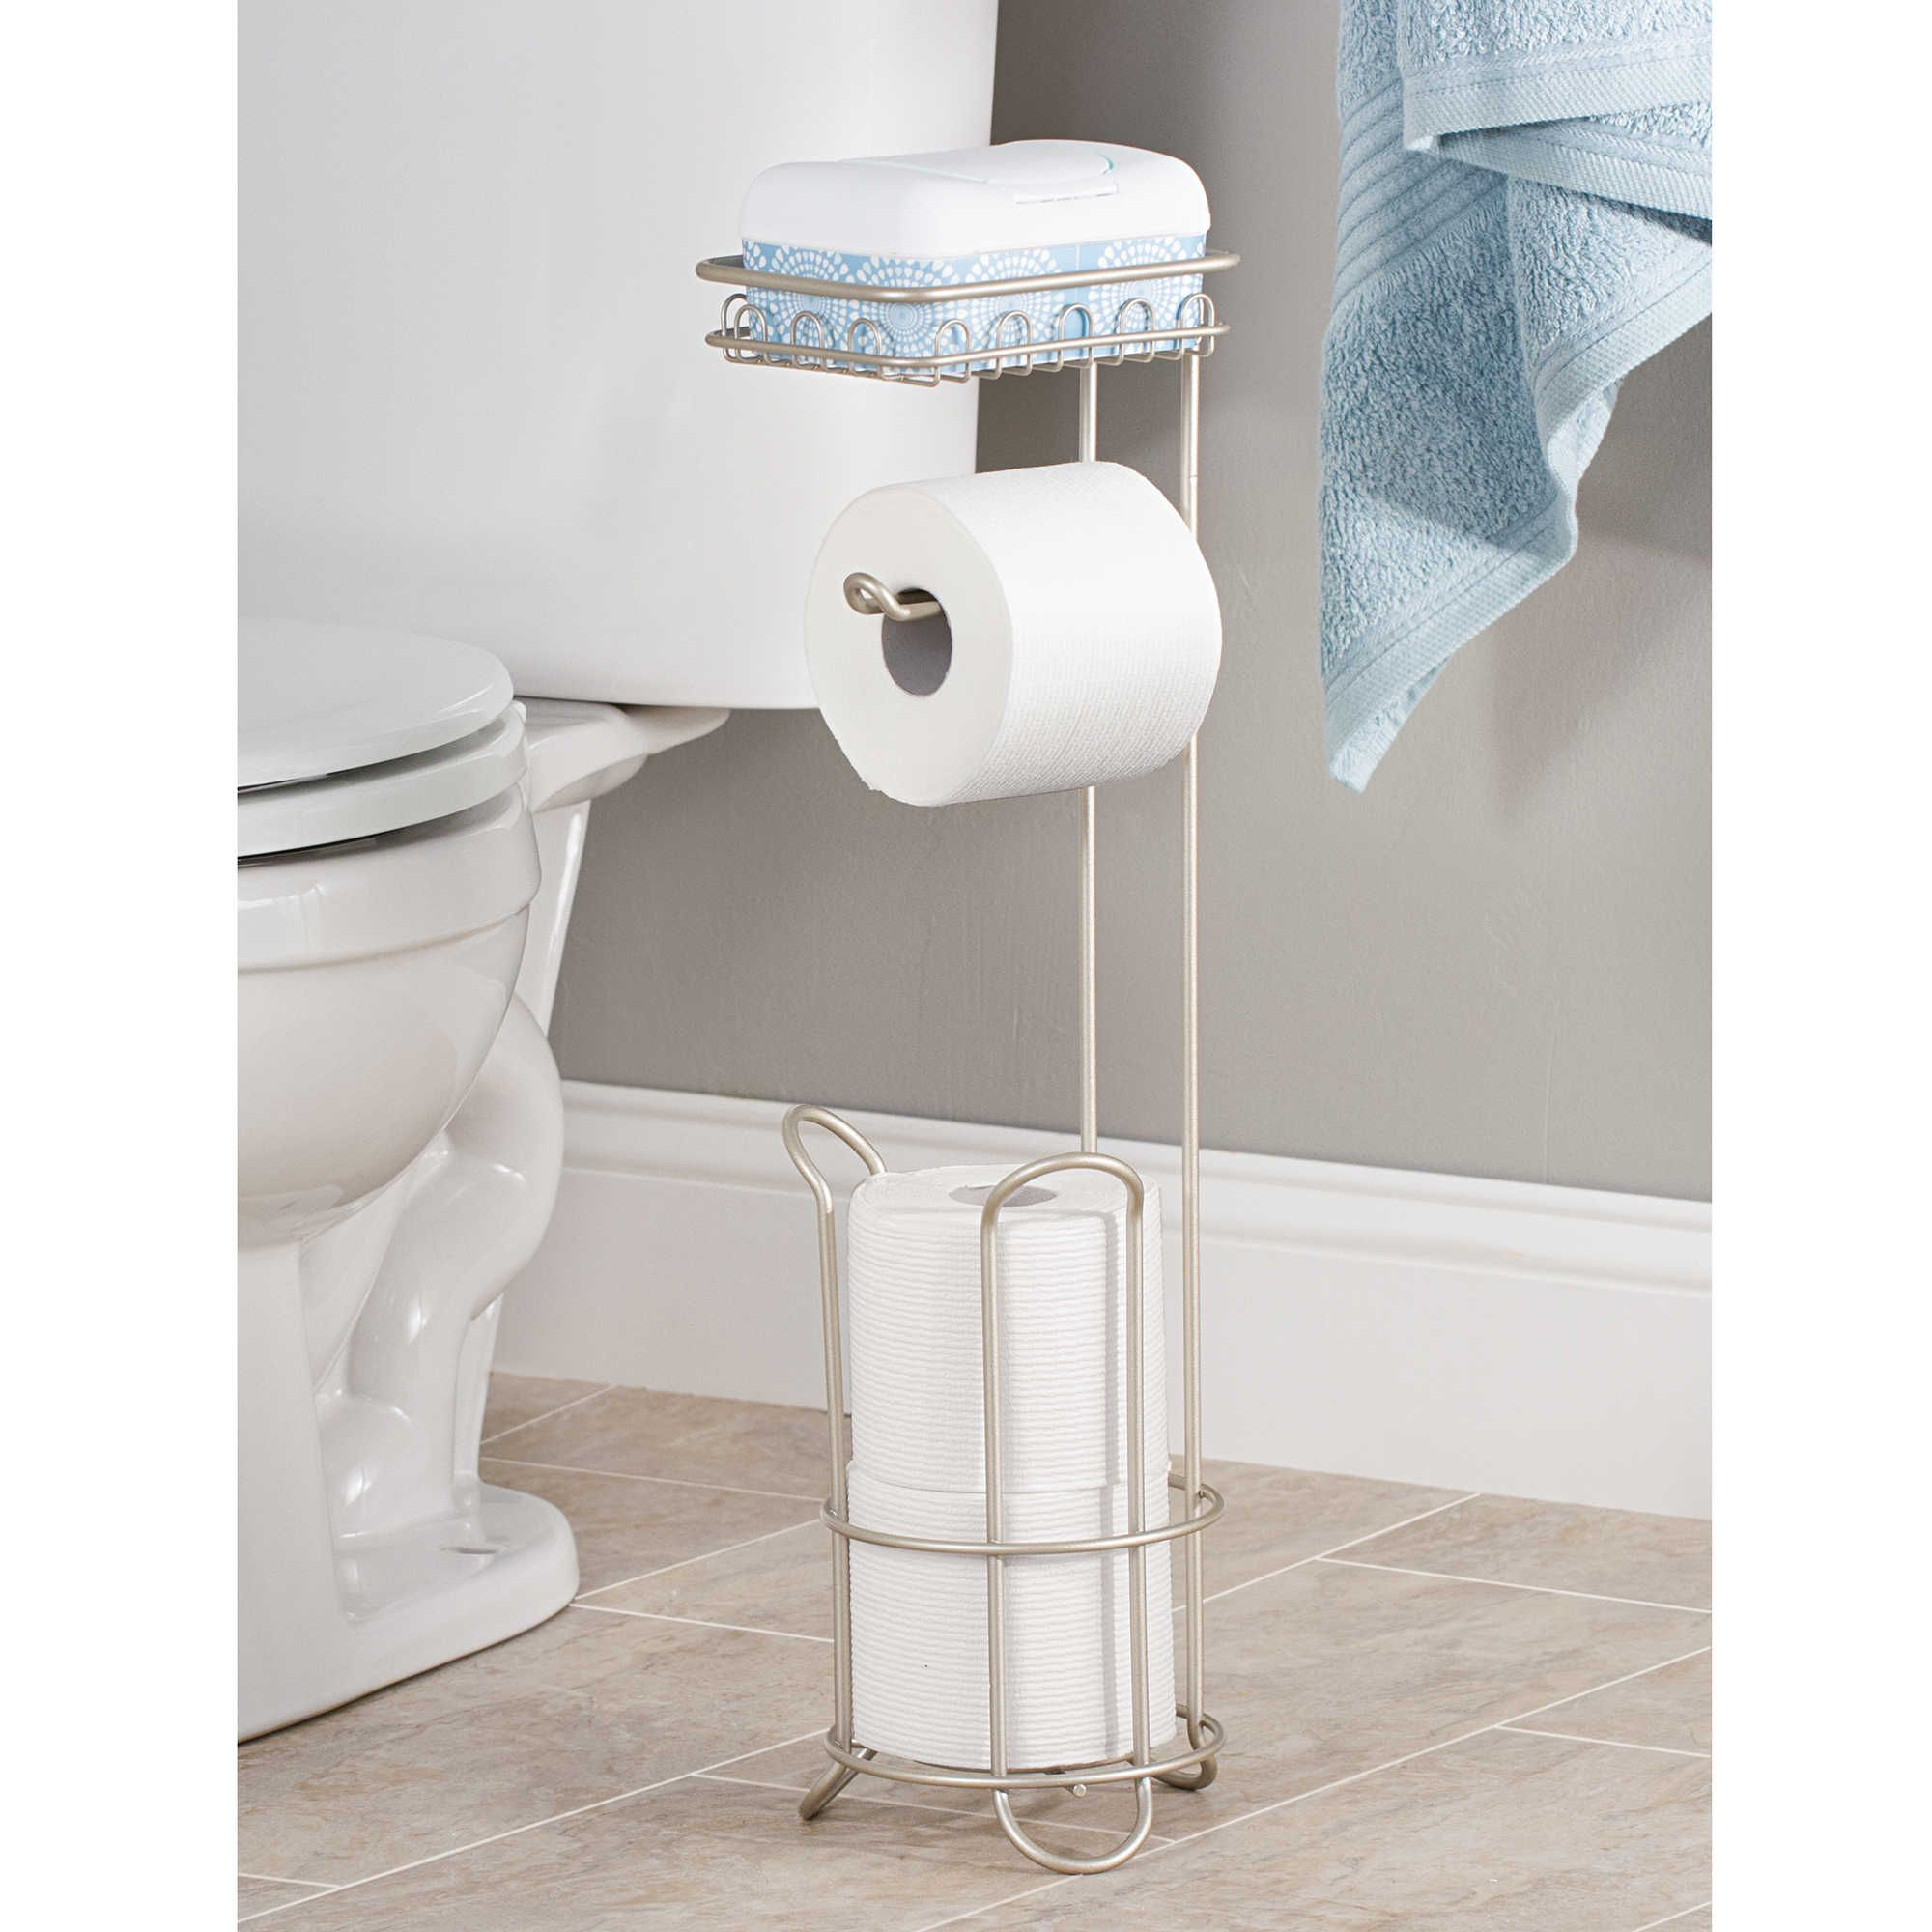 Best 25+ Toilet Paper Stand Ideas On Pinterest  Fun Diy Crafts, Diy For  Teens And Diys For Summer